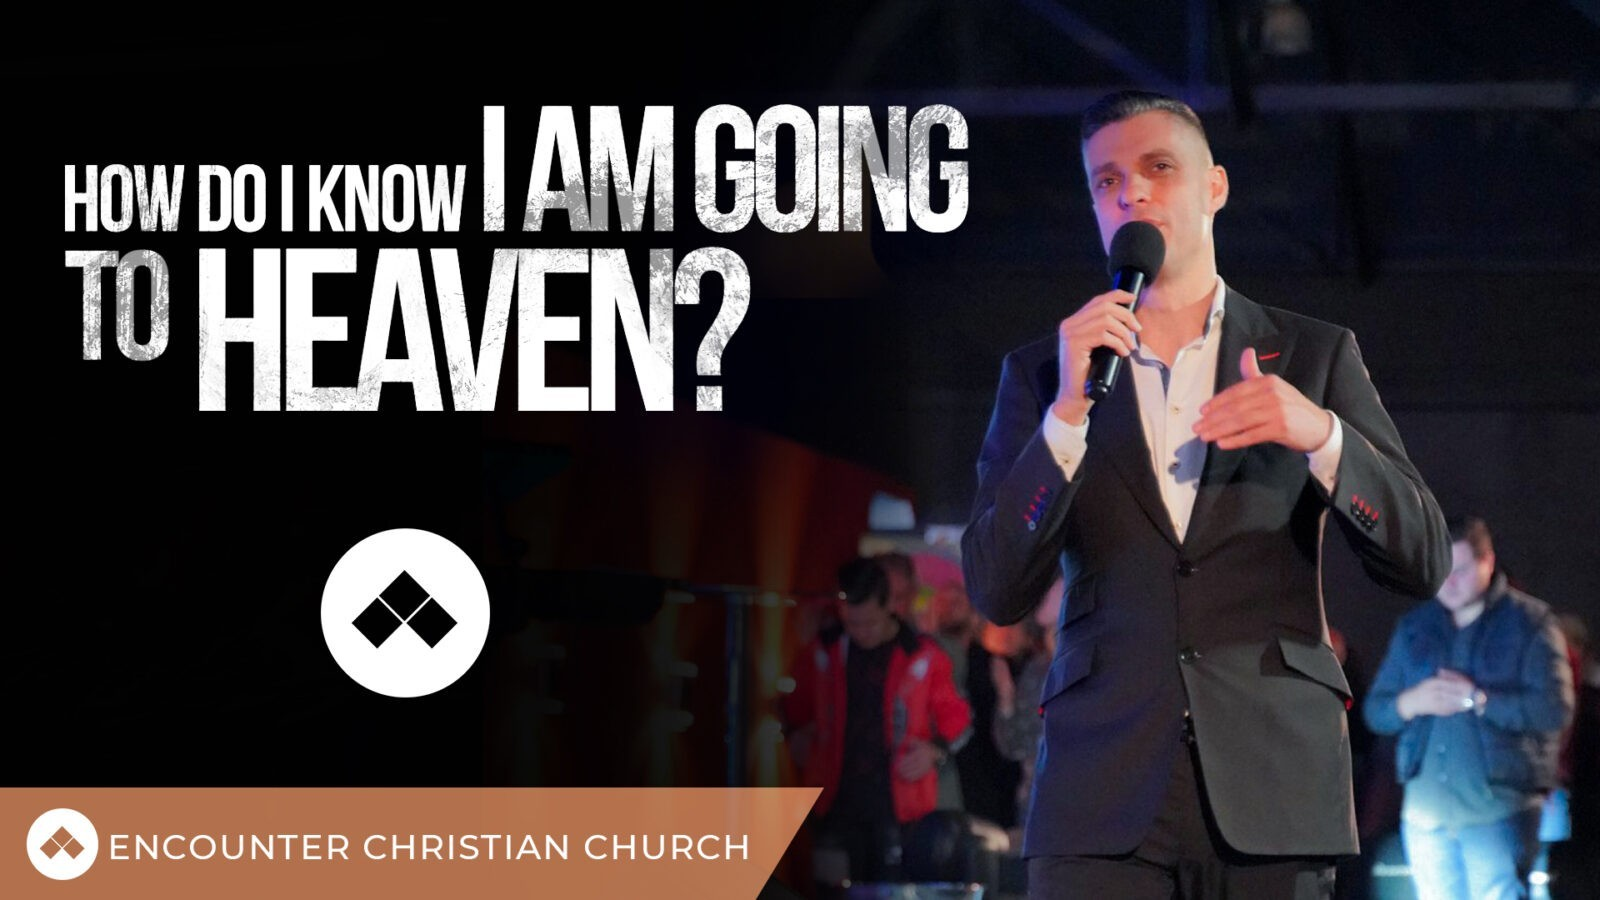 How Do I Know I am Going to Heaven?